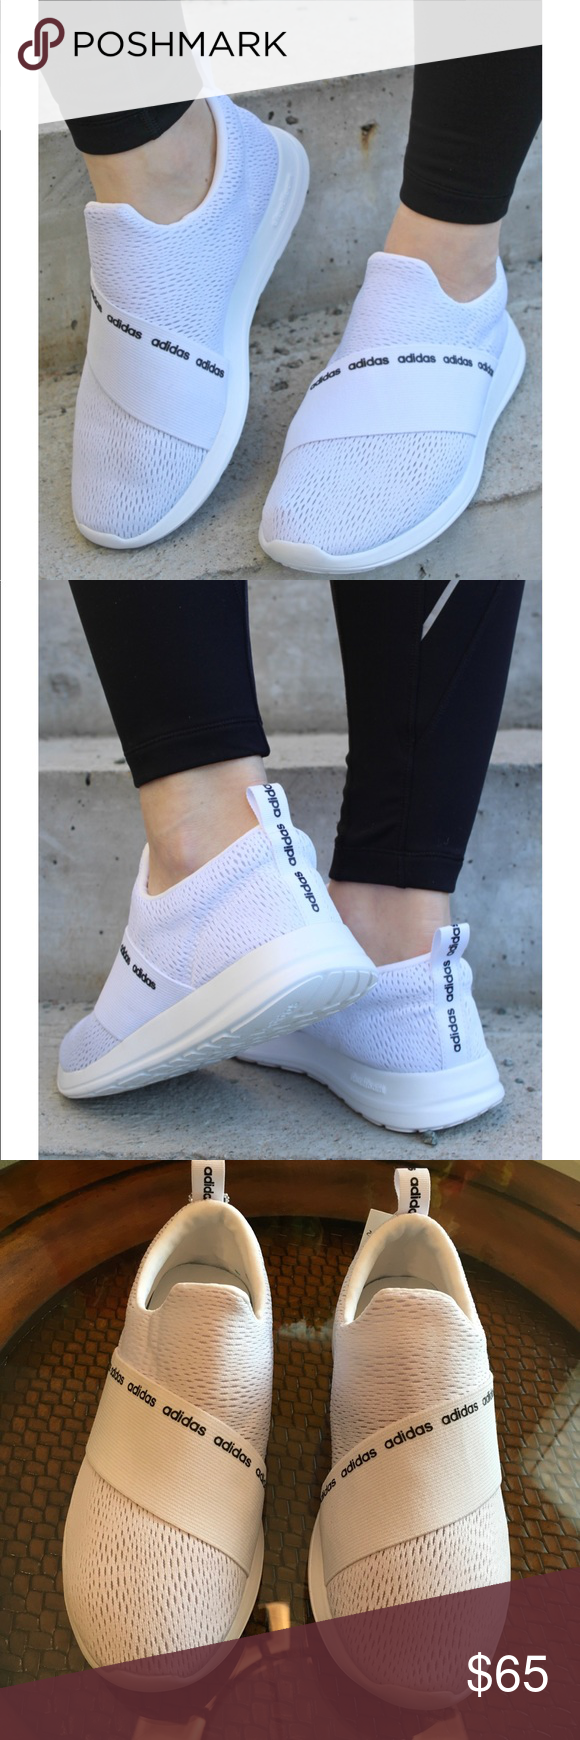 8ff19bef299f 💥Adidas Cloudfoam Refine Adapt Women s Shoes💥 These adidas Cloudfoam  Refine Adapt shoes deliver a comfortable fit and reliable performance  you ll love.